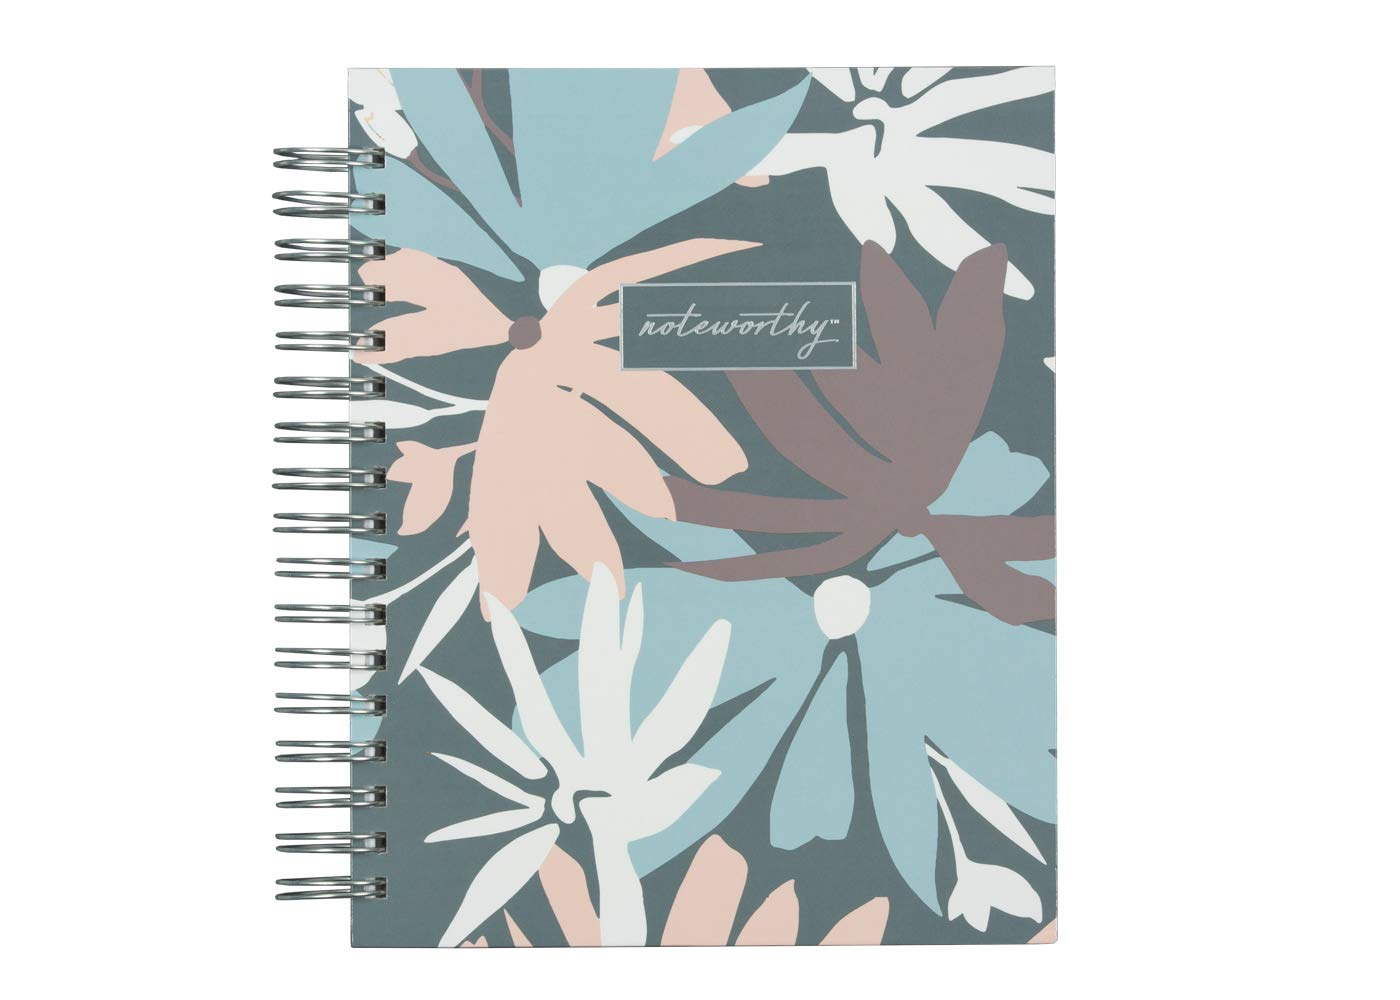 Blue Sky Noteworthy 2019-2020 Academic Year Daily & Monthly Planner, Hardcover, Silver-Tone Twin-Wire Binding, 7'' x 9'', Britt